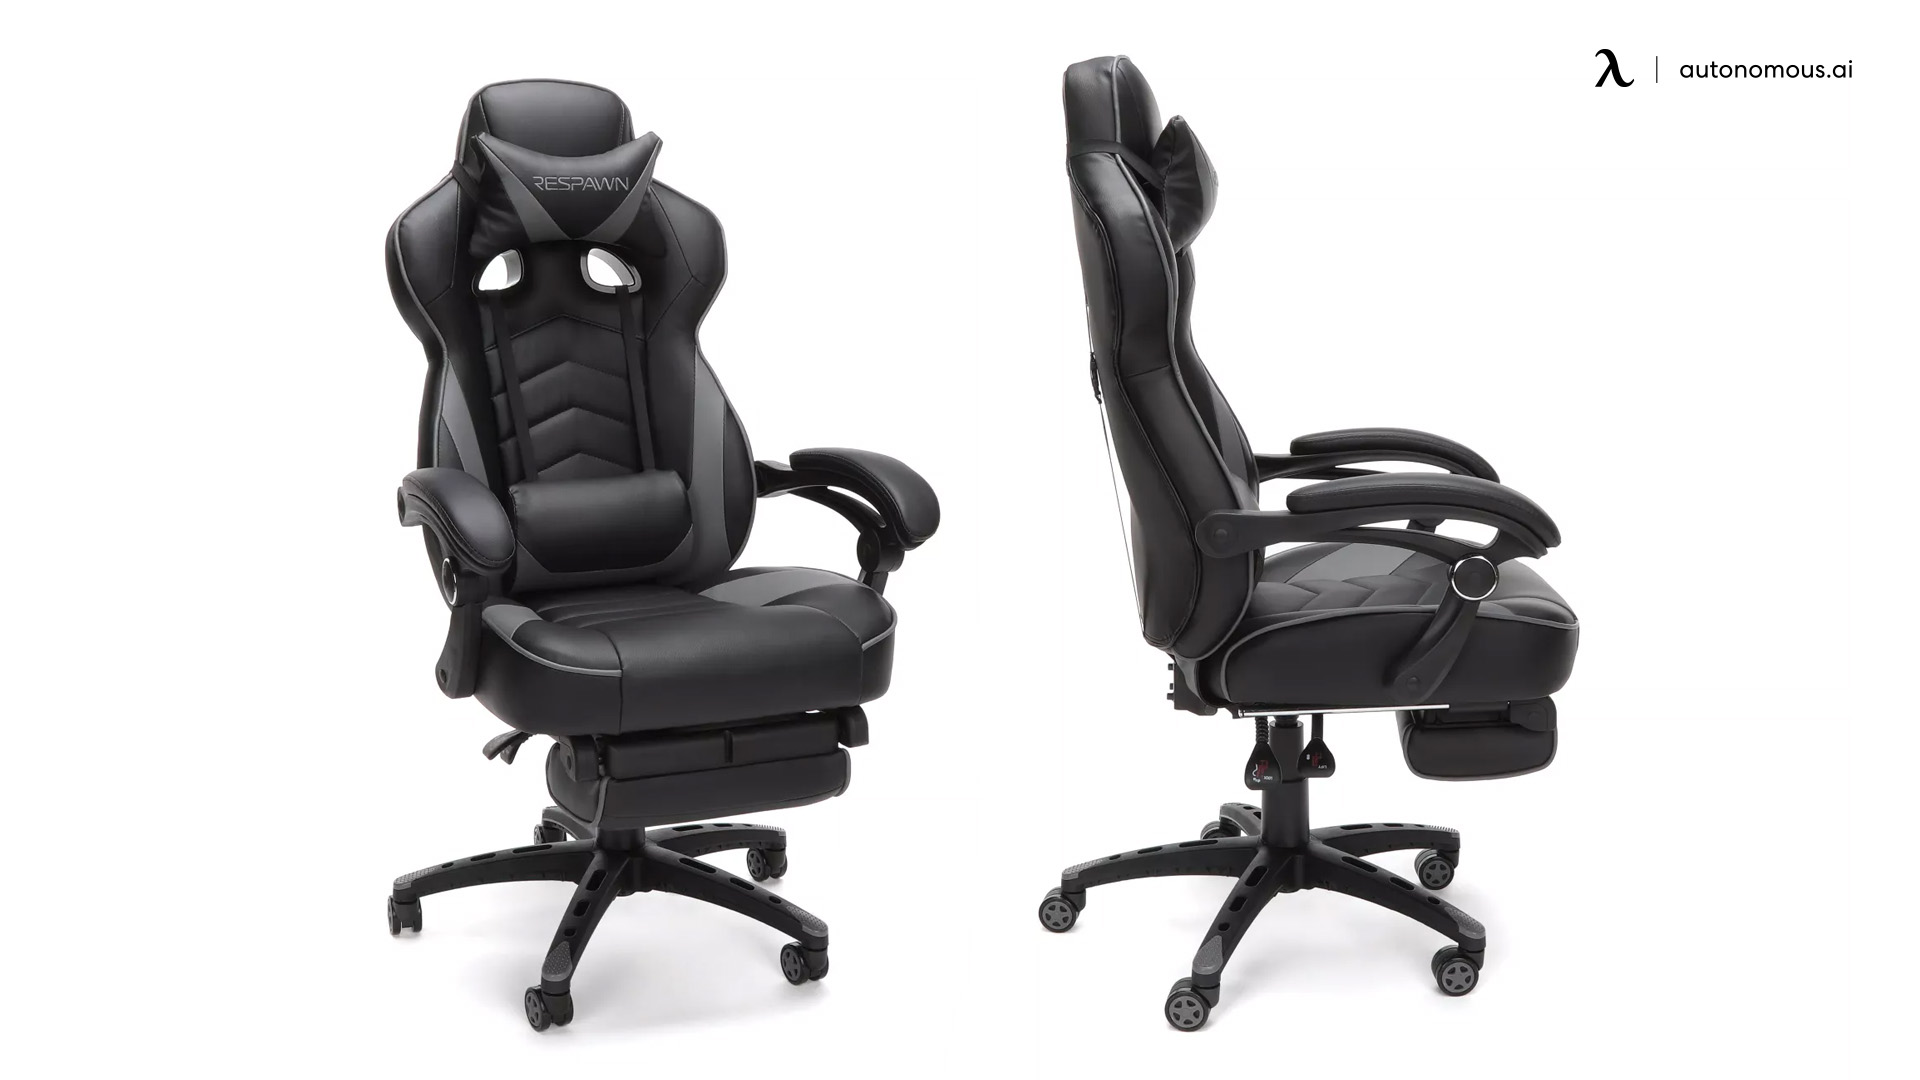 Respawning Reclining Office Chair with Footrest